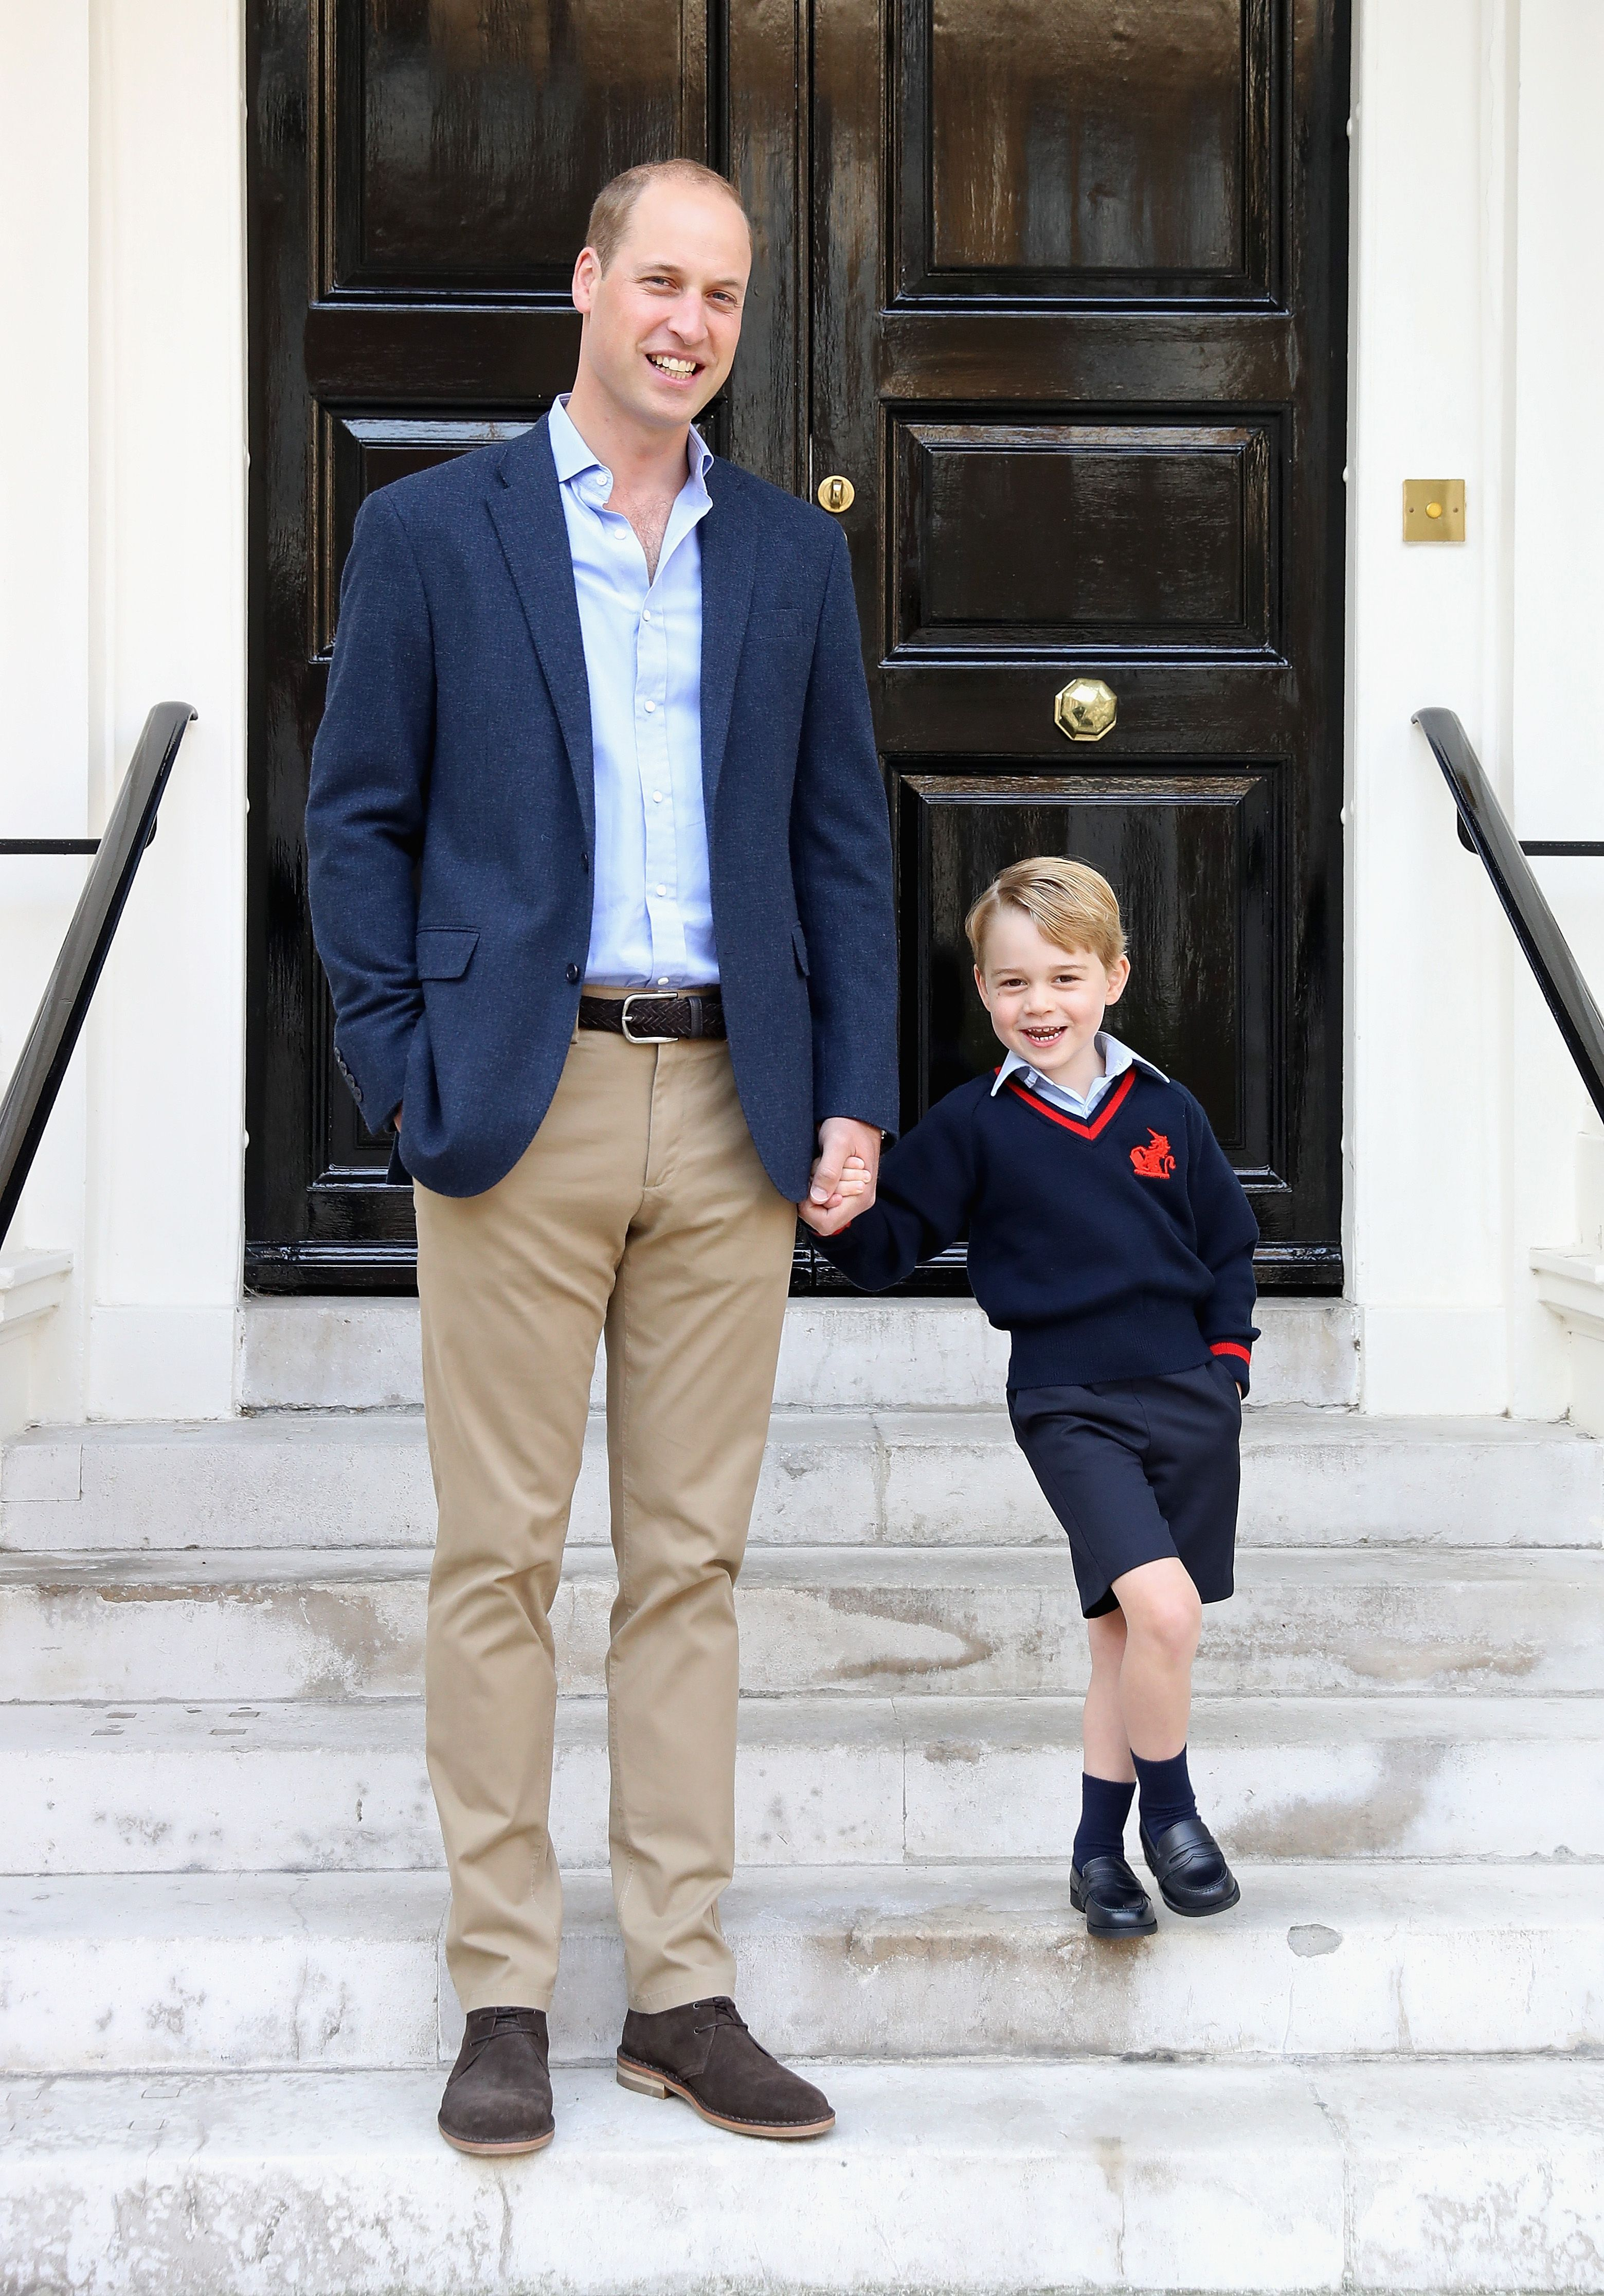 21b76a661890 10 Prince George Facts You Need to Know for His 5th Birthday